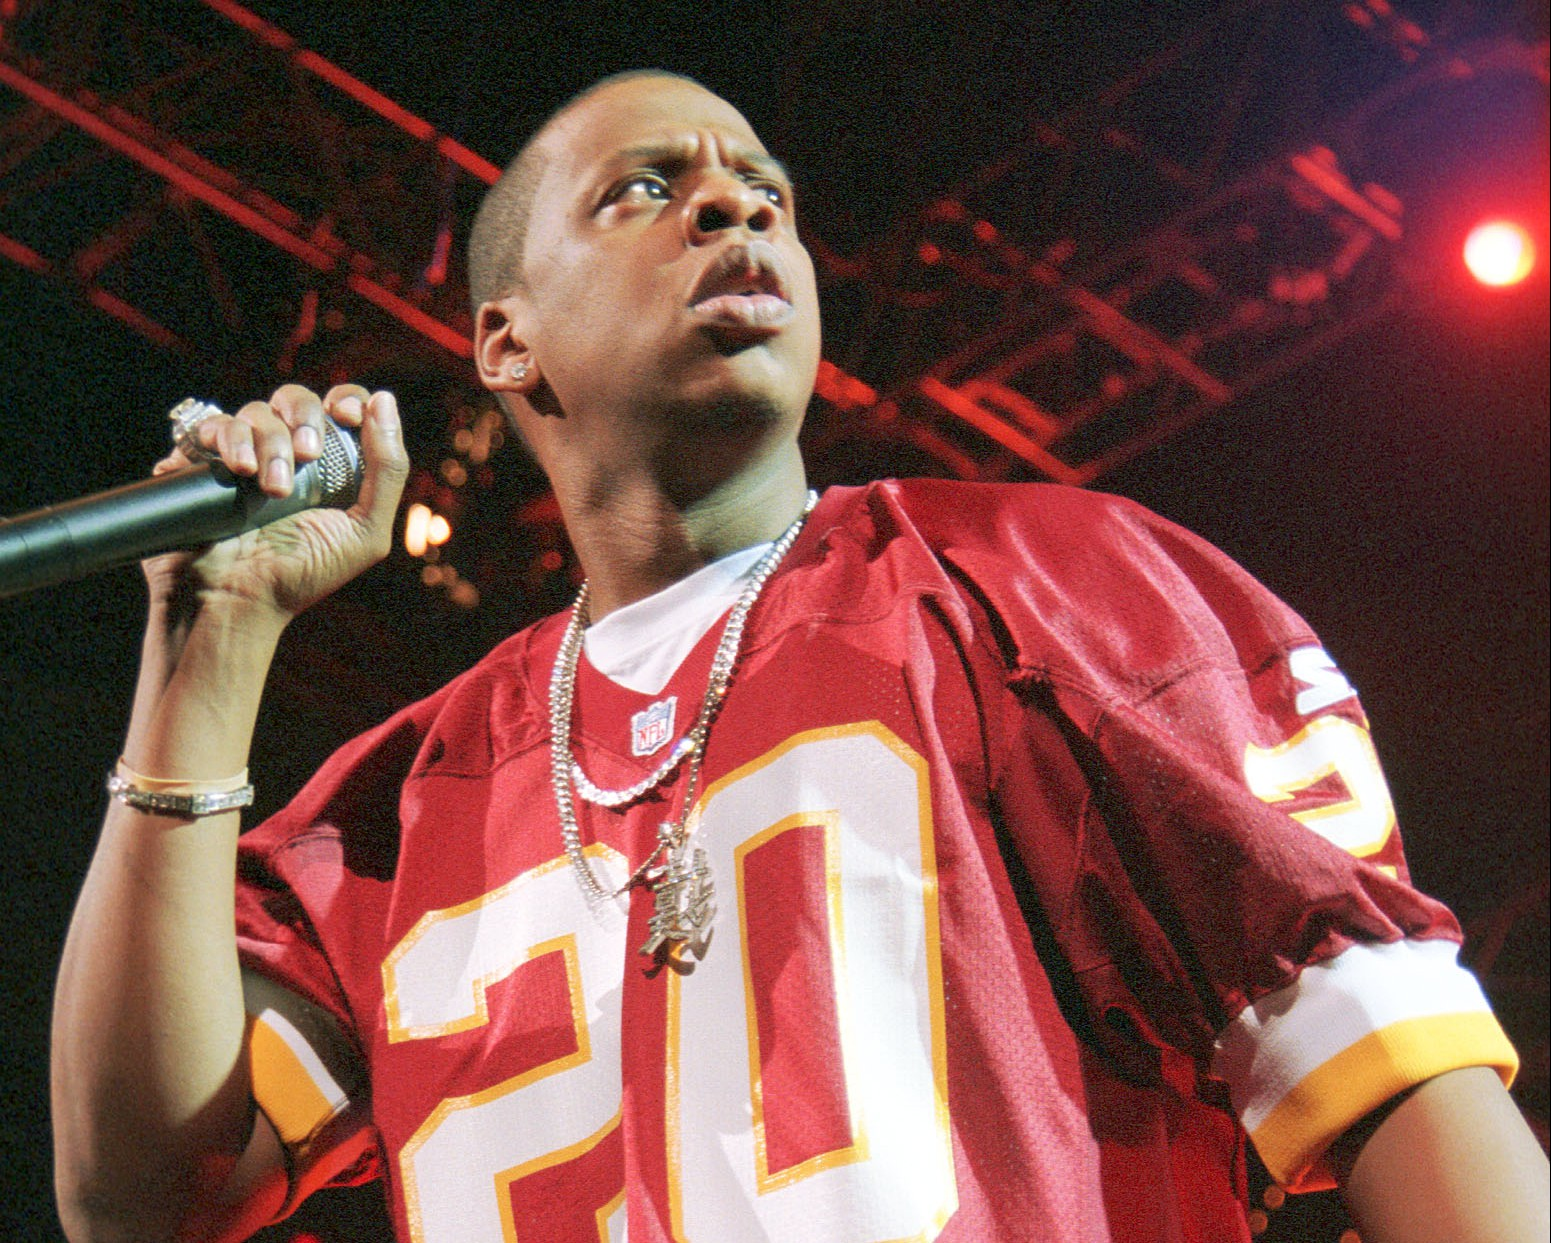 Jay-Z performing in 1999 during the Hard Knock Life tours stop in D.C. USA TODAY